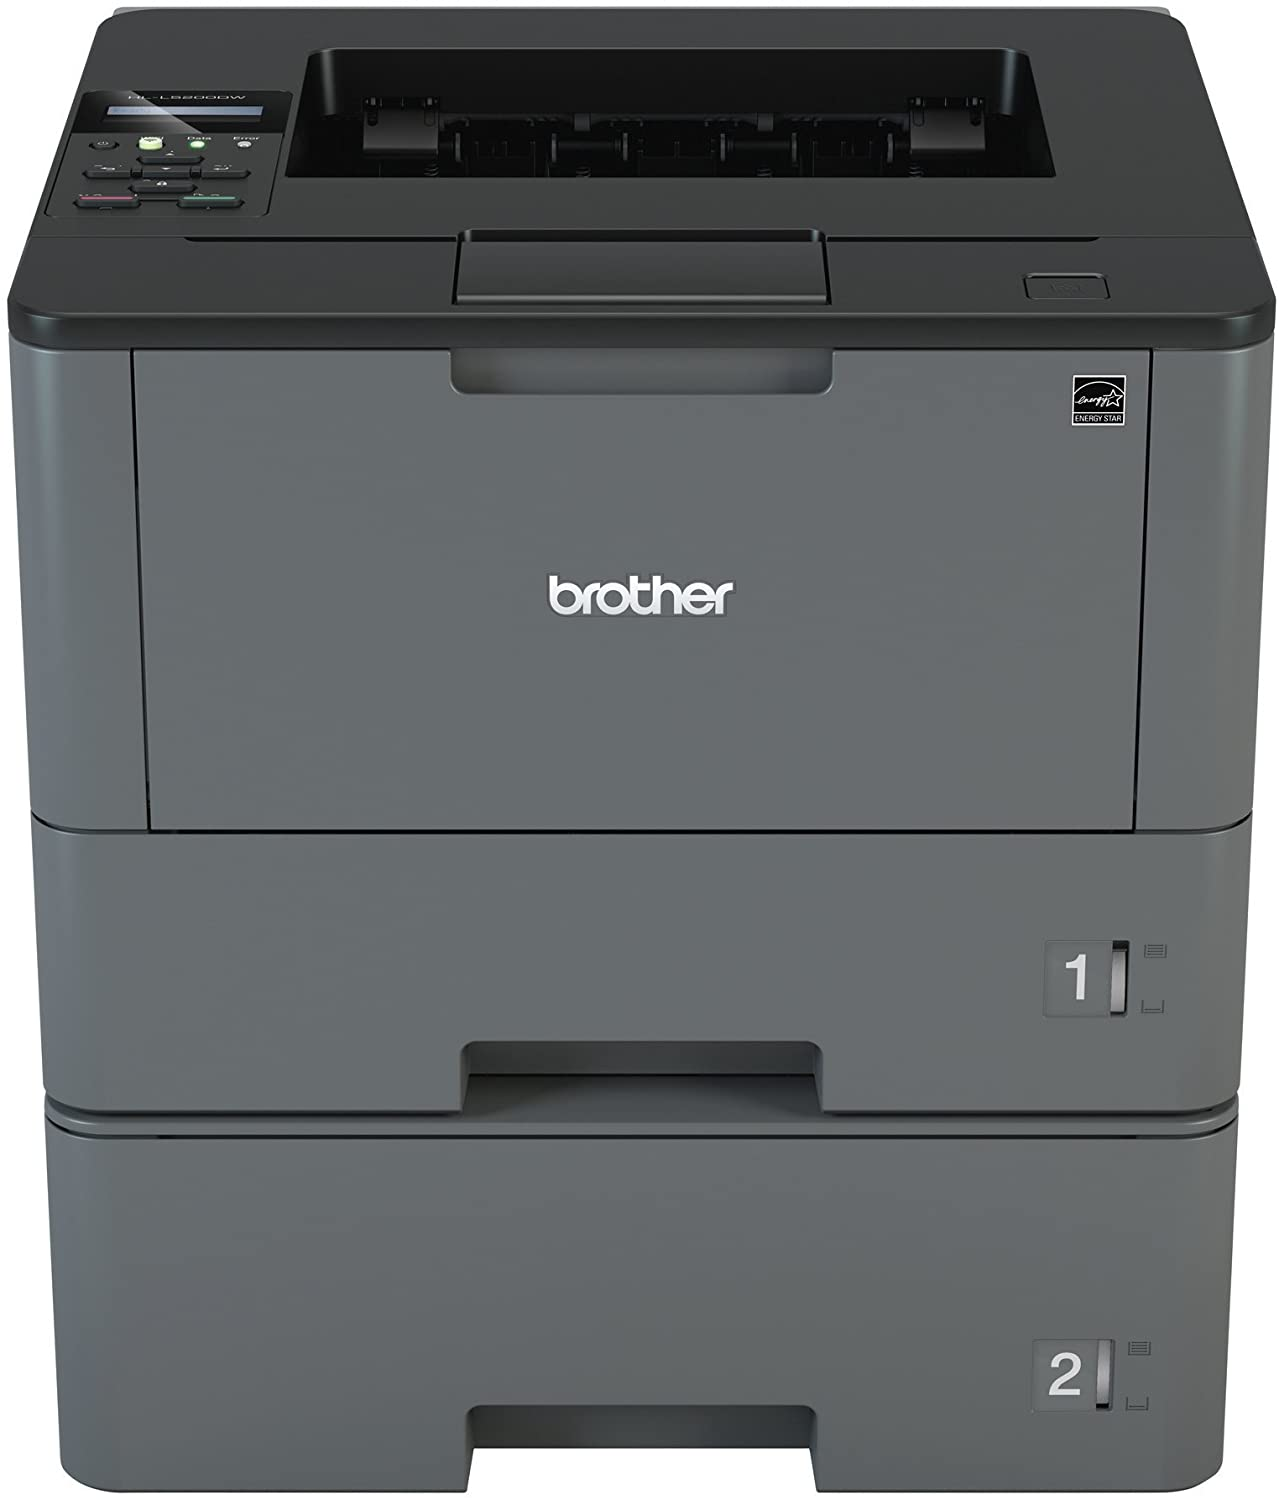 Brother Monochrome Laser Printer, HL-L5200DWT, Duplex Printing, Wireless Networking, Dual Paper Trays, Mobile Printing, Amazon Dash Replenishment ...